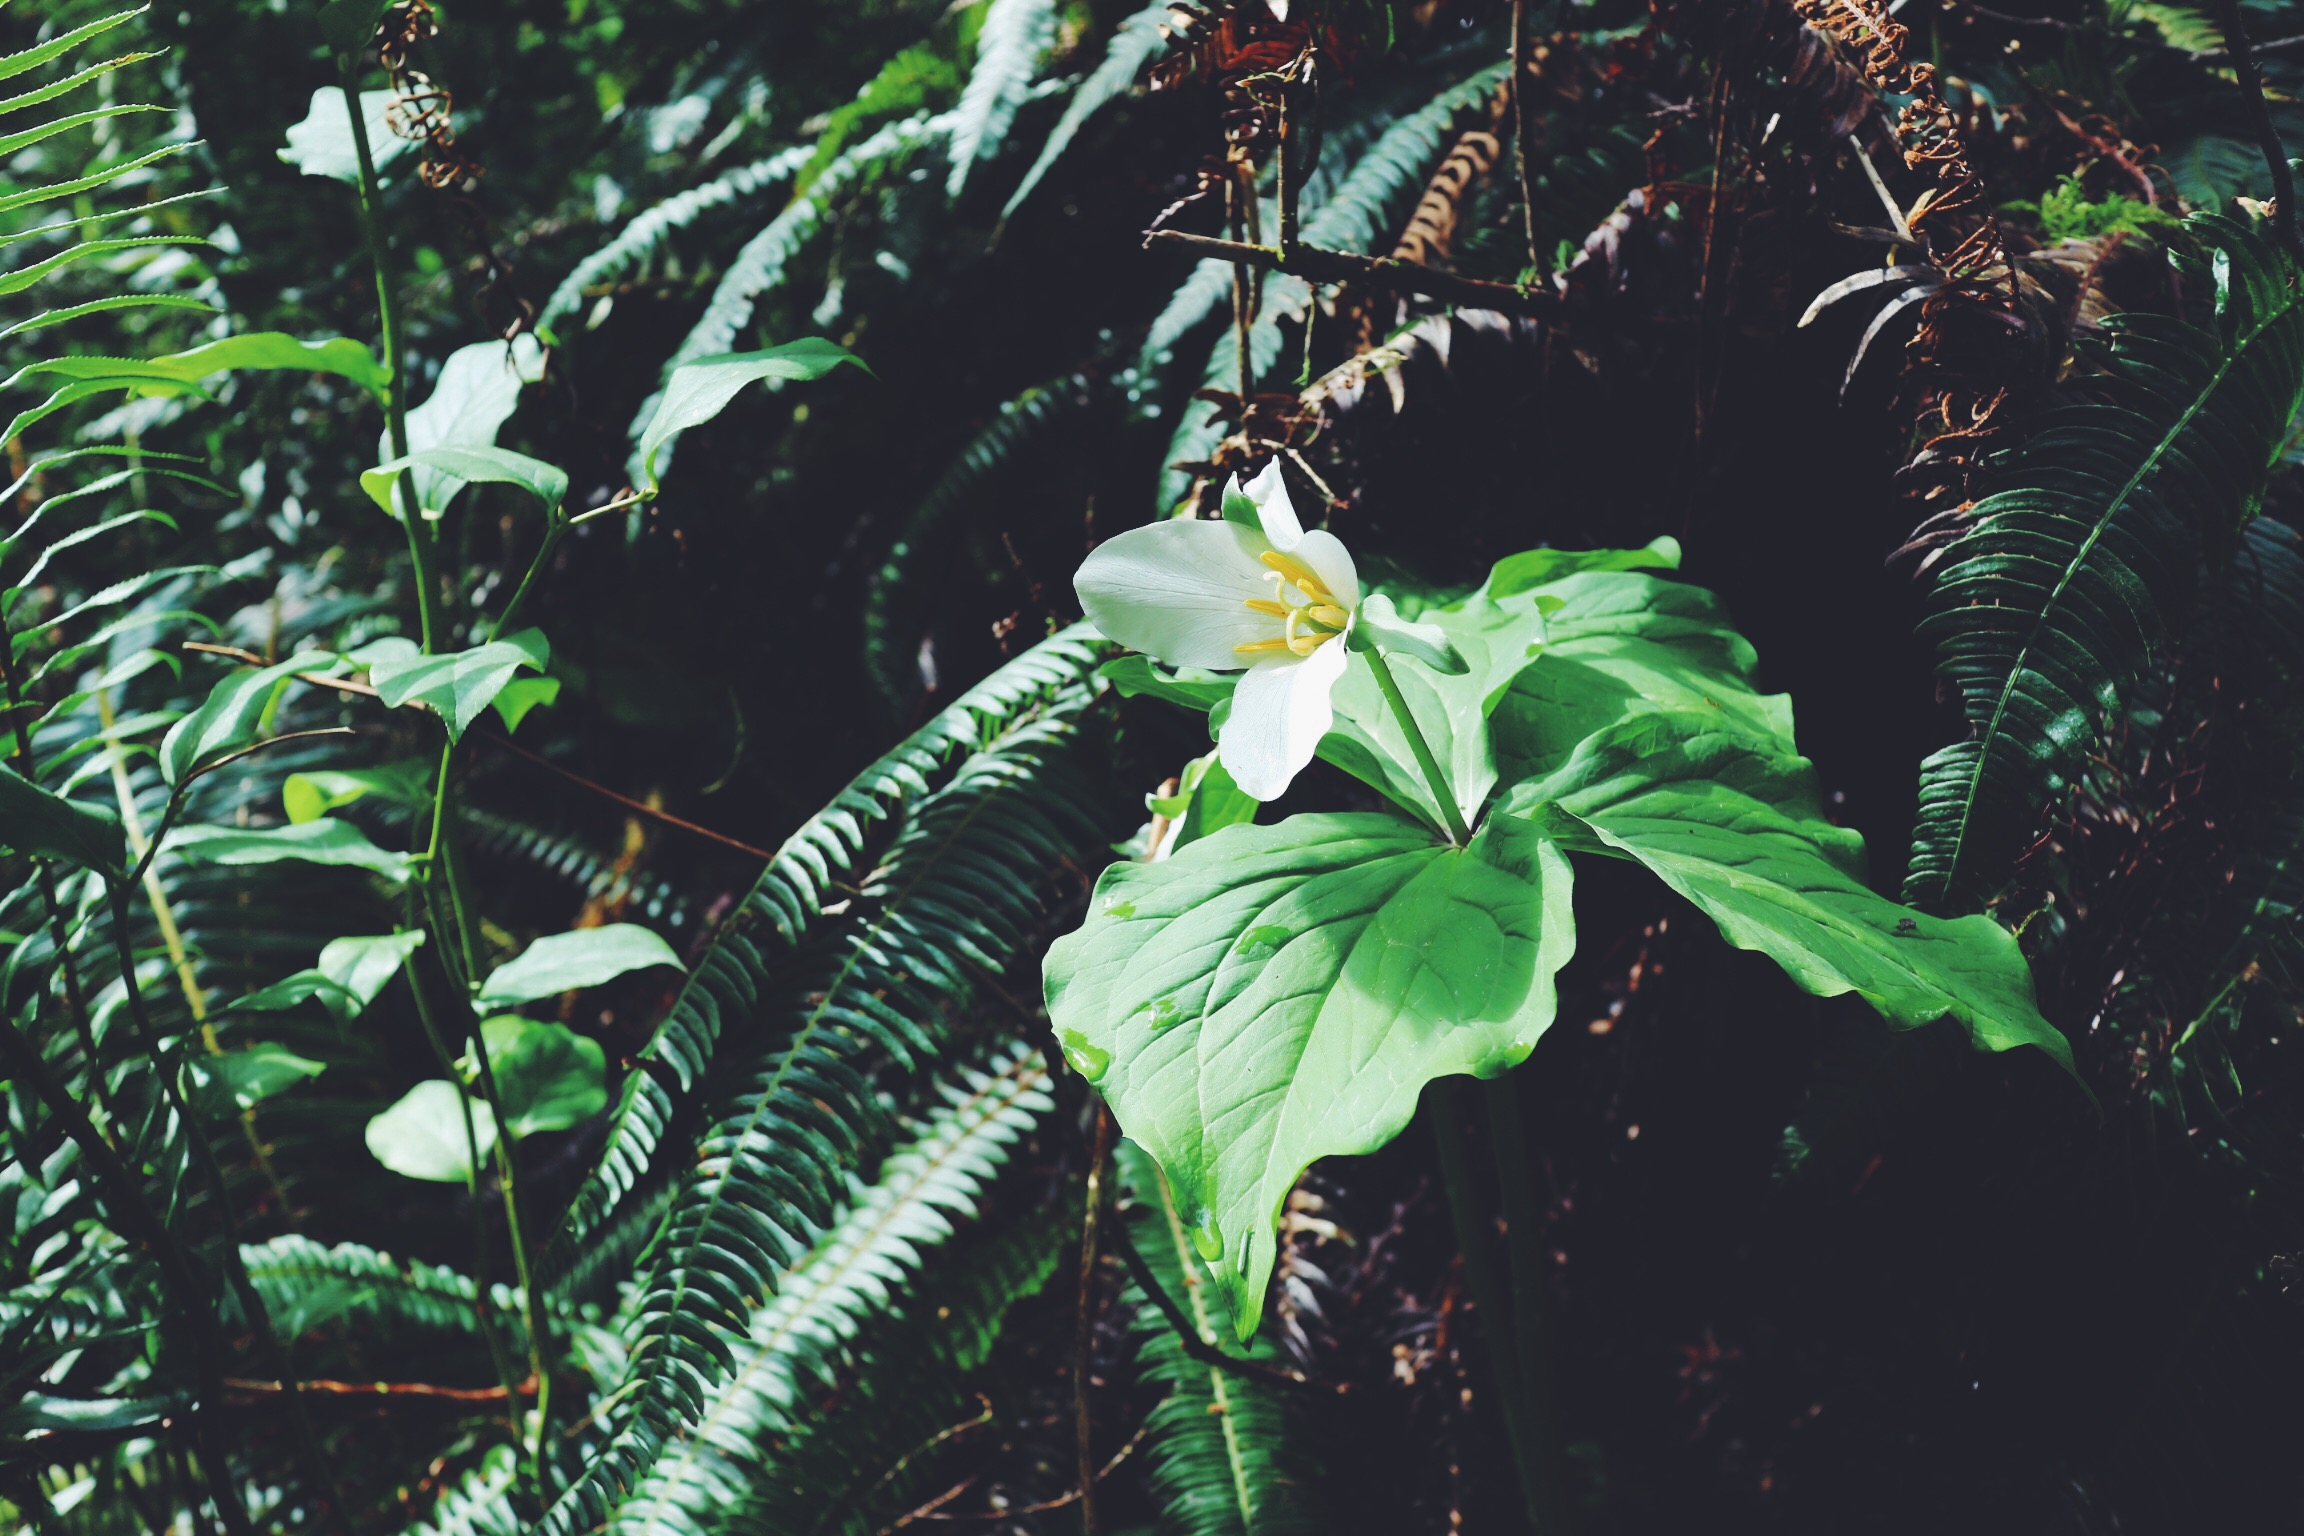 Trillium growing where I once slept near a highway in the woods.